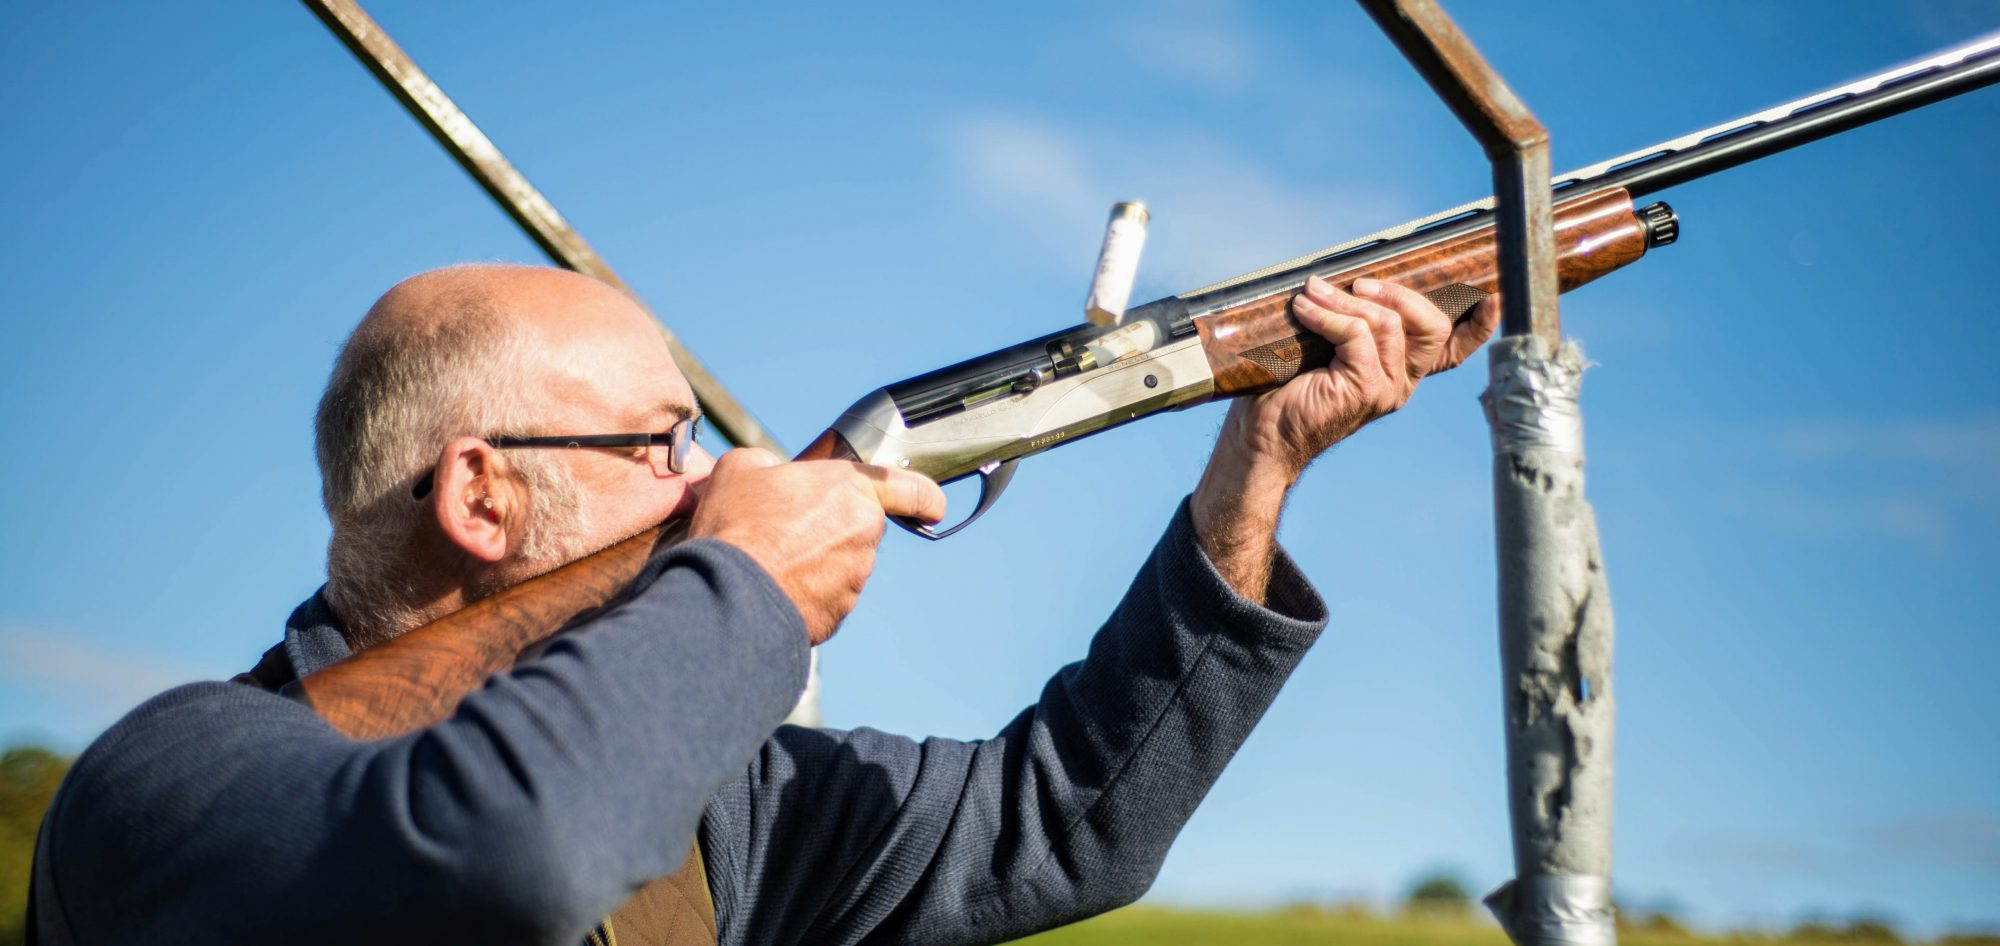 Spennymoor and District Clay Pigeon Club